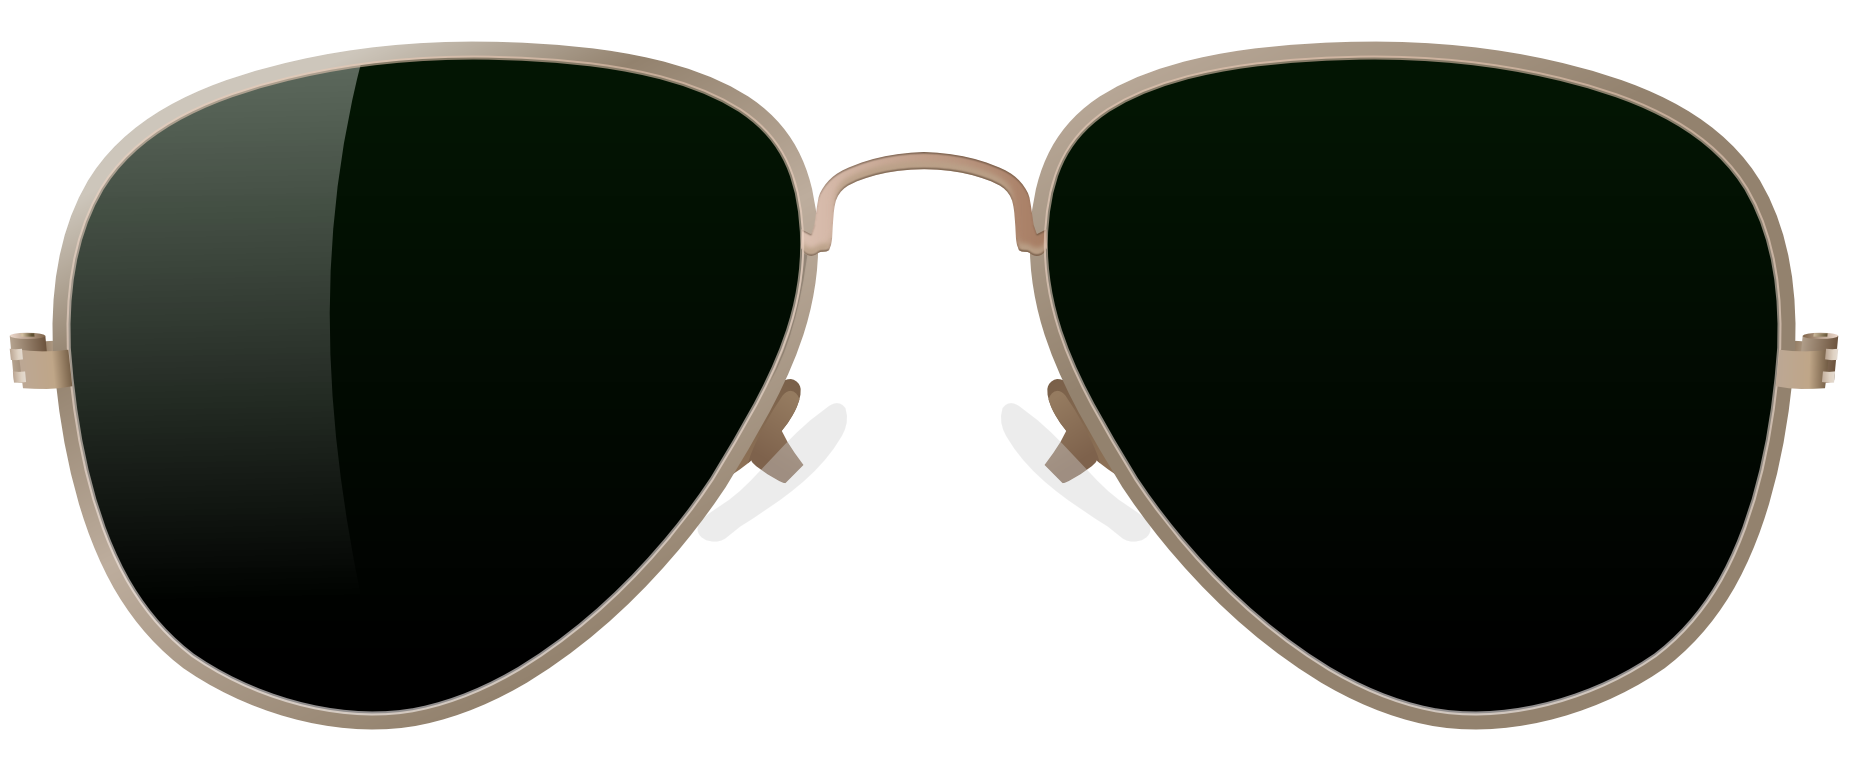 Circle sunglasses png. Free transparent images download